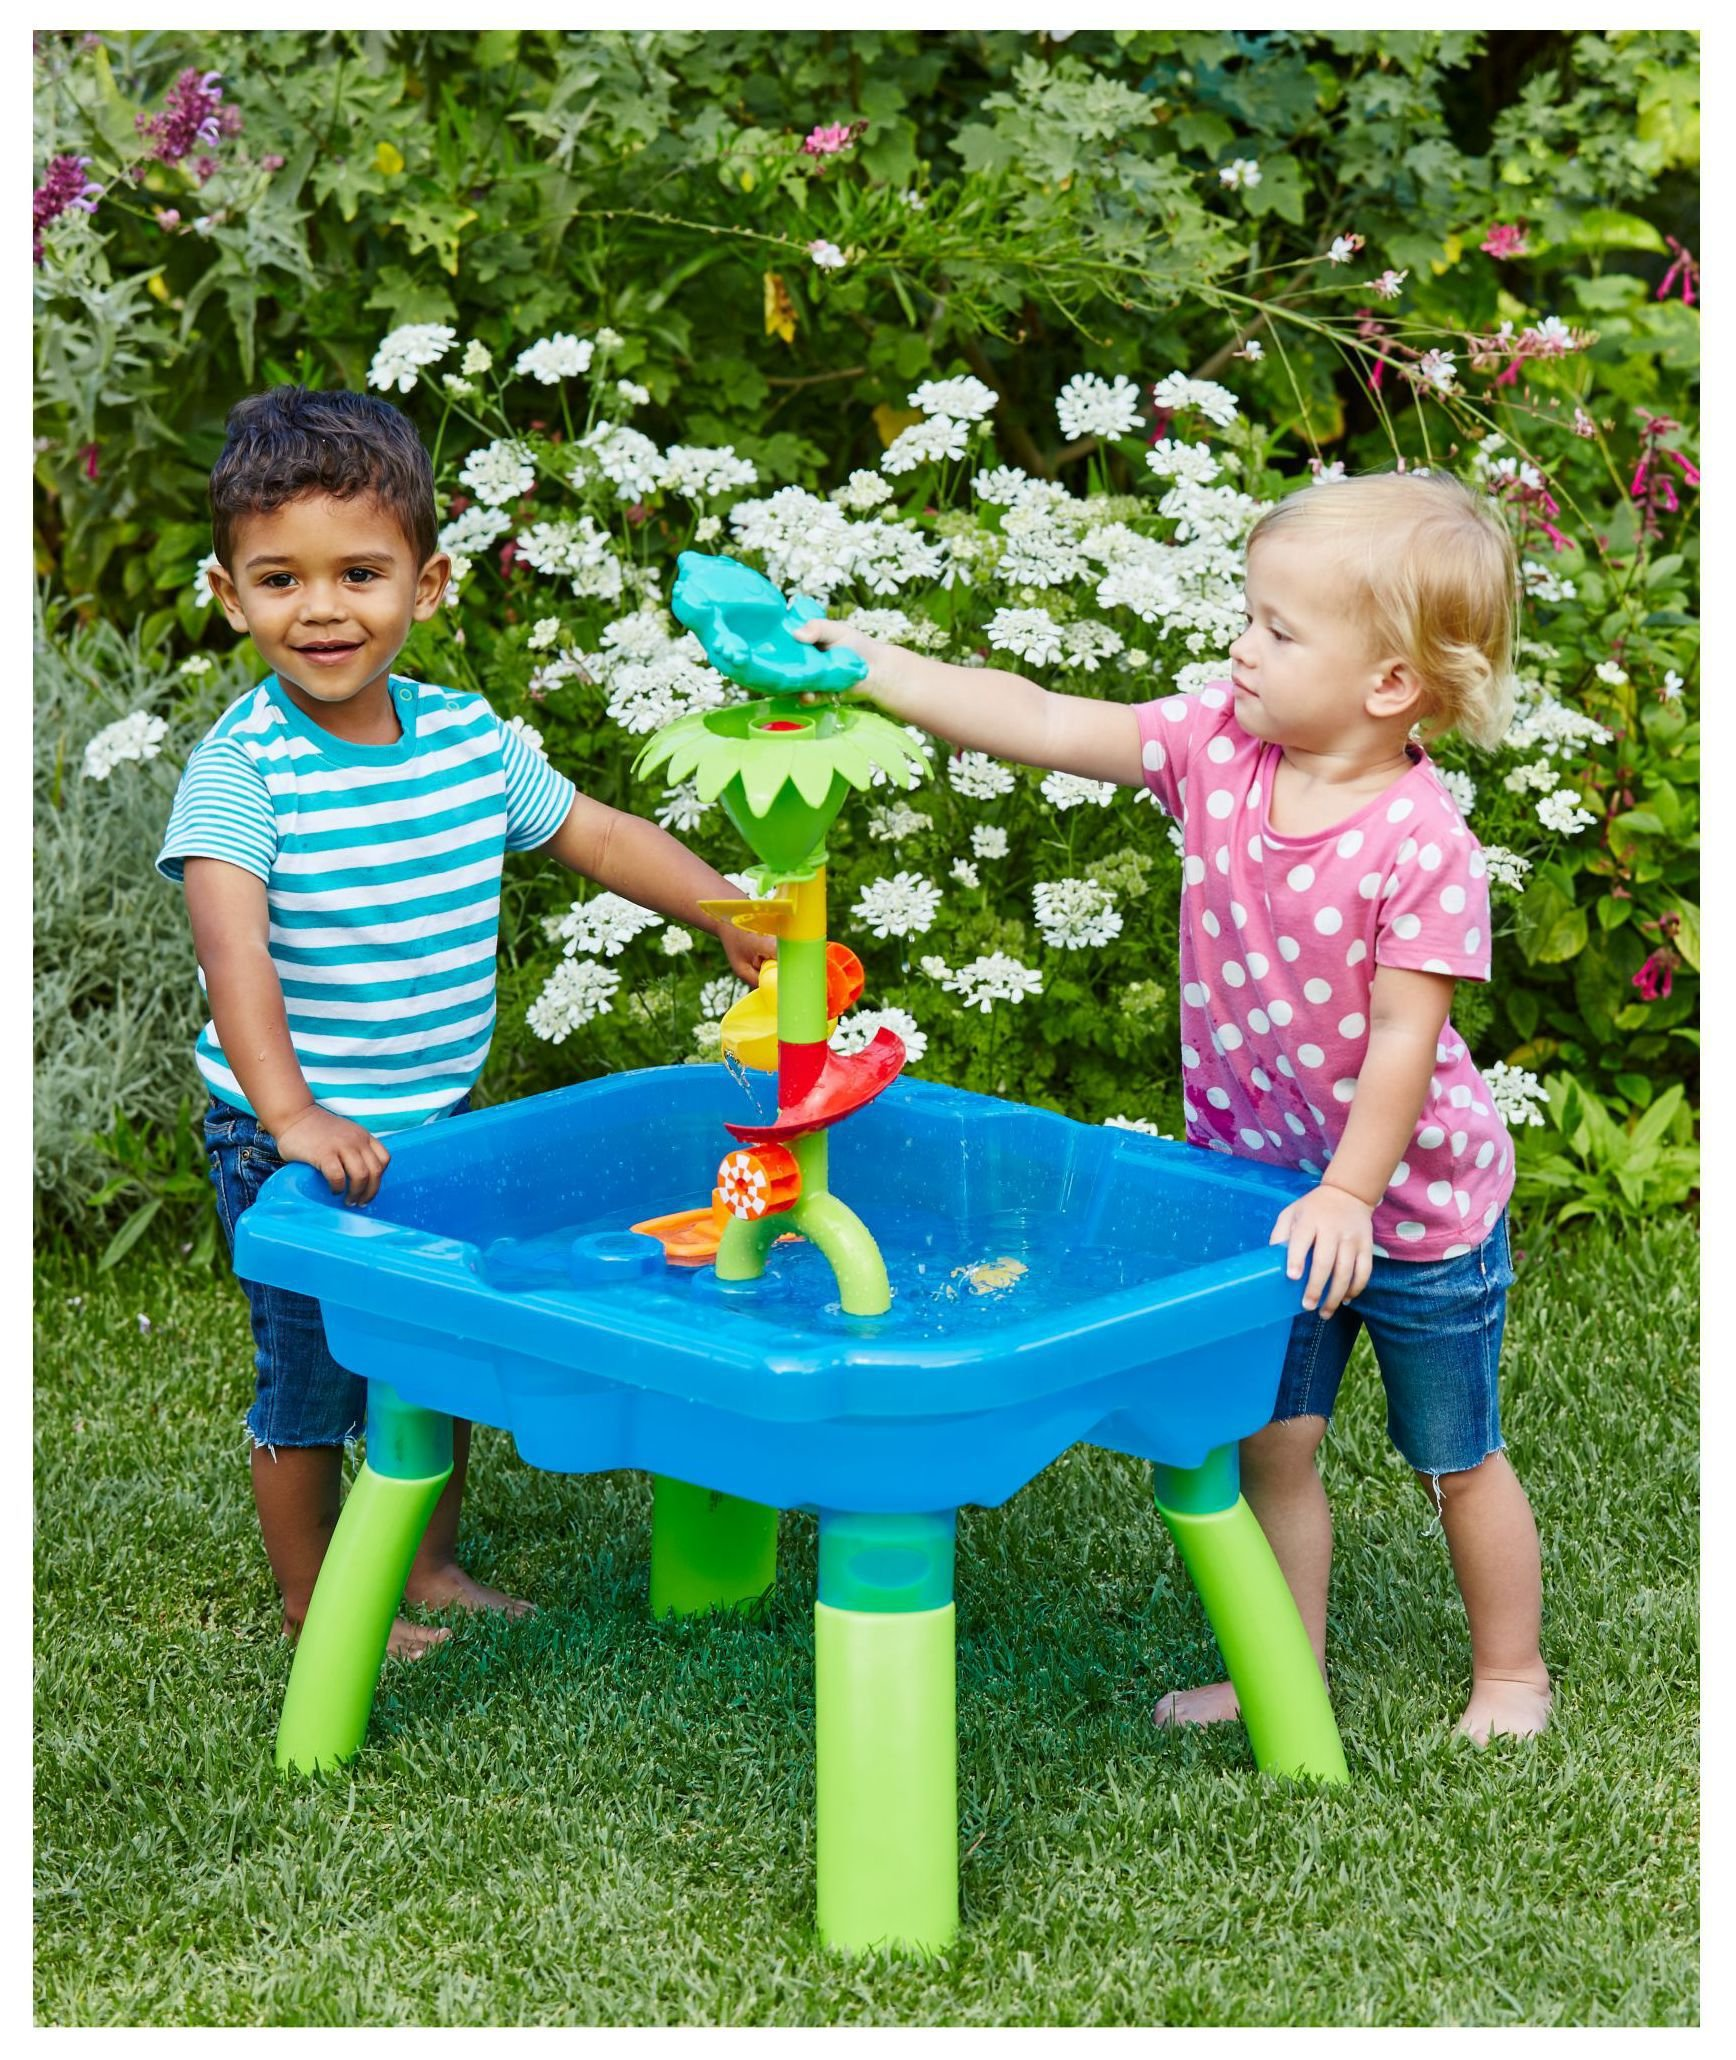 elc water play table perfect for splishing splashing and pouring